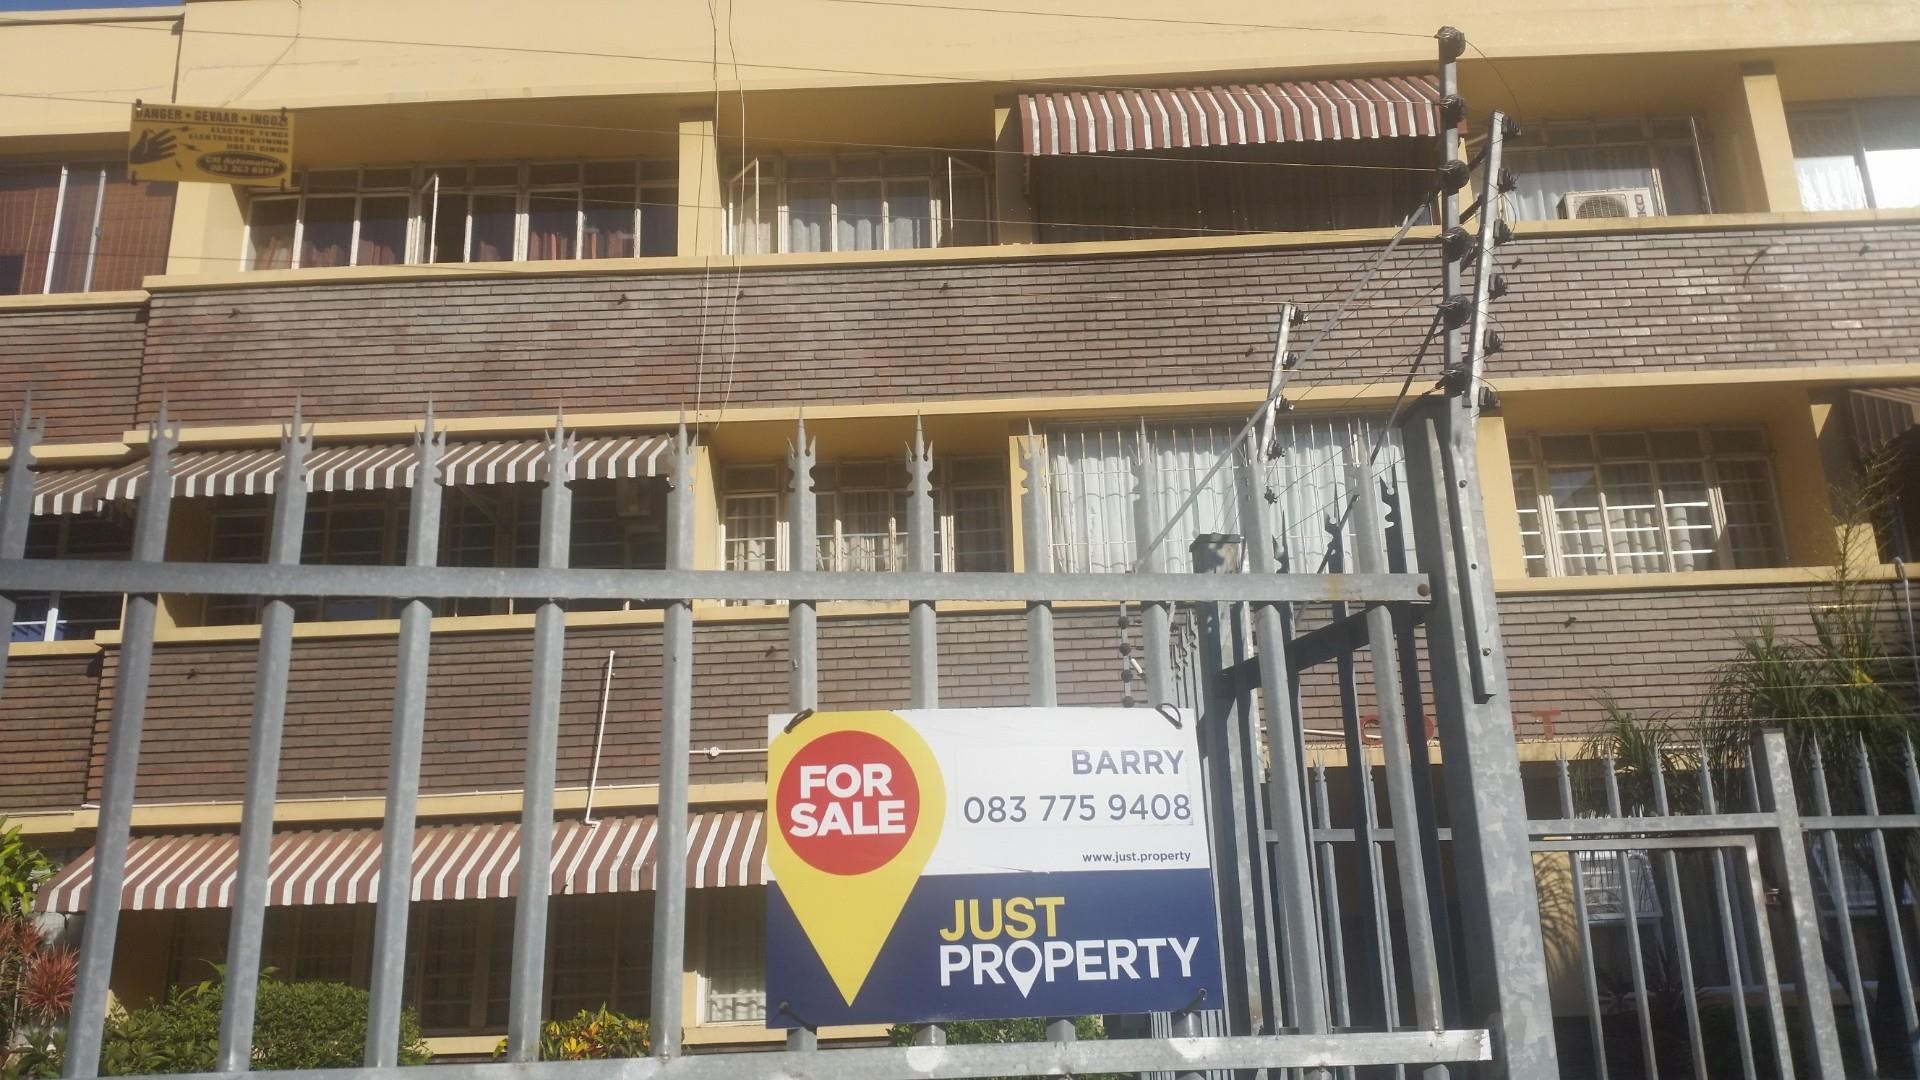 40 Bedroom Apartment for Sale in Musgrave